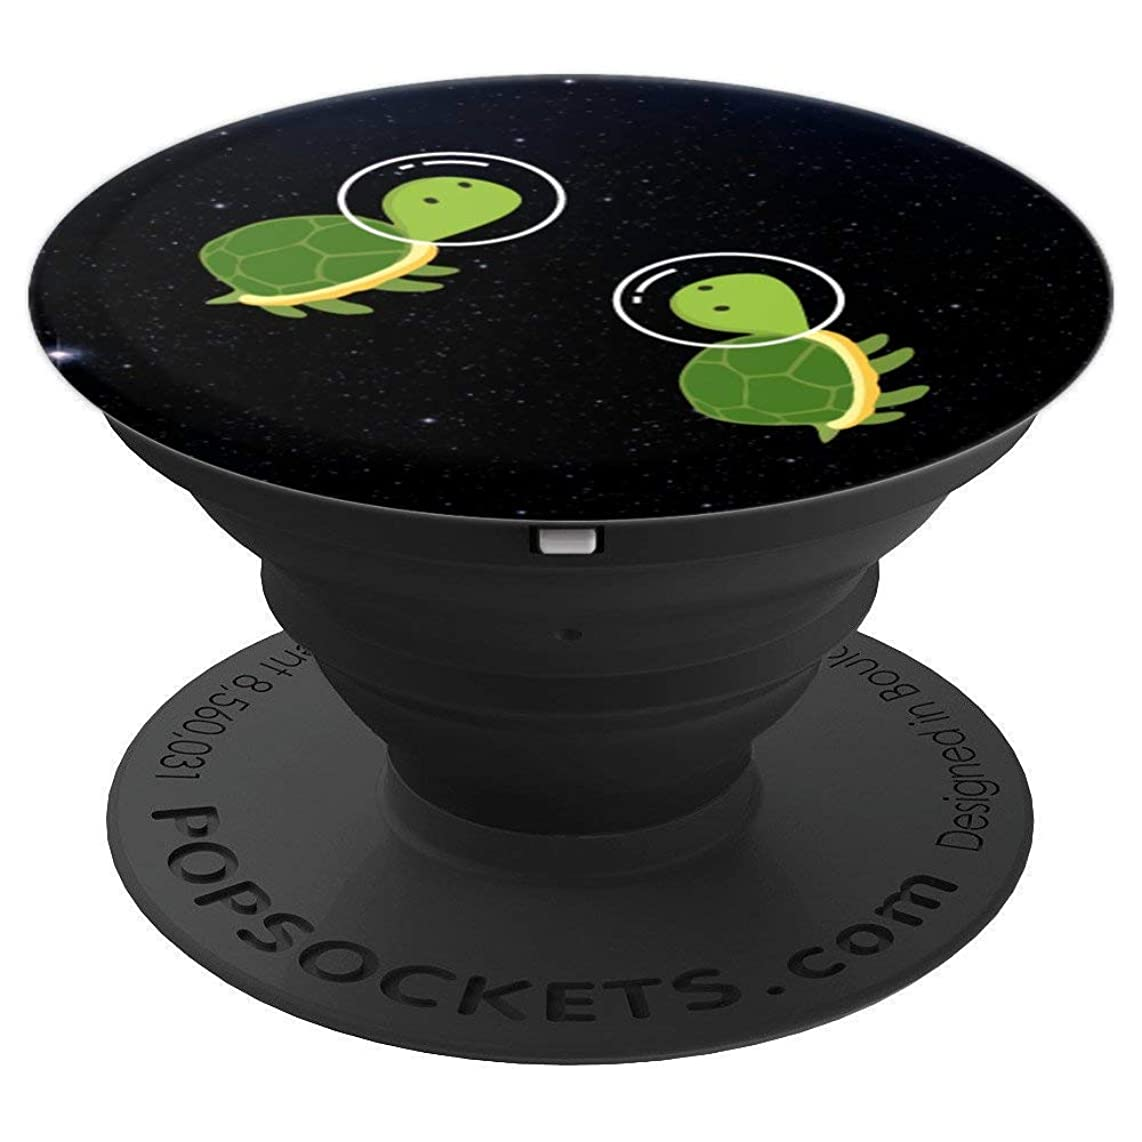 Cute Space Turtle Turtoise Galaxy - PopSockets Grip and Stand for Phones and Tablets